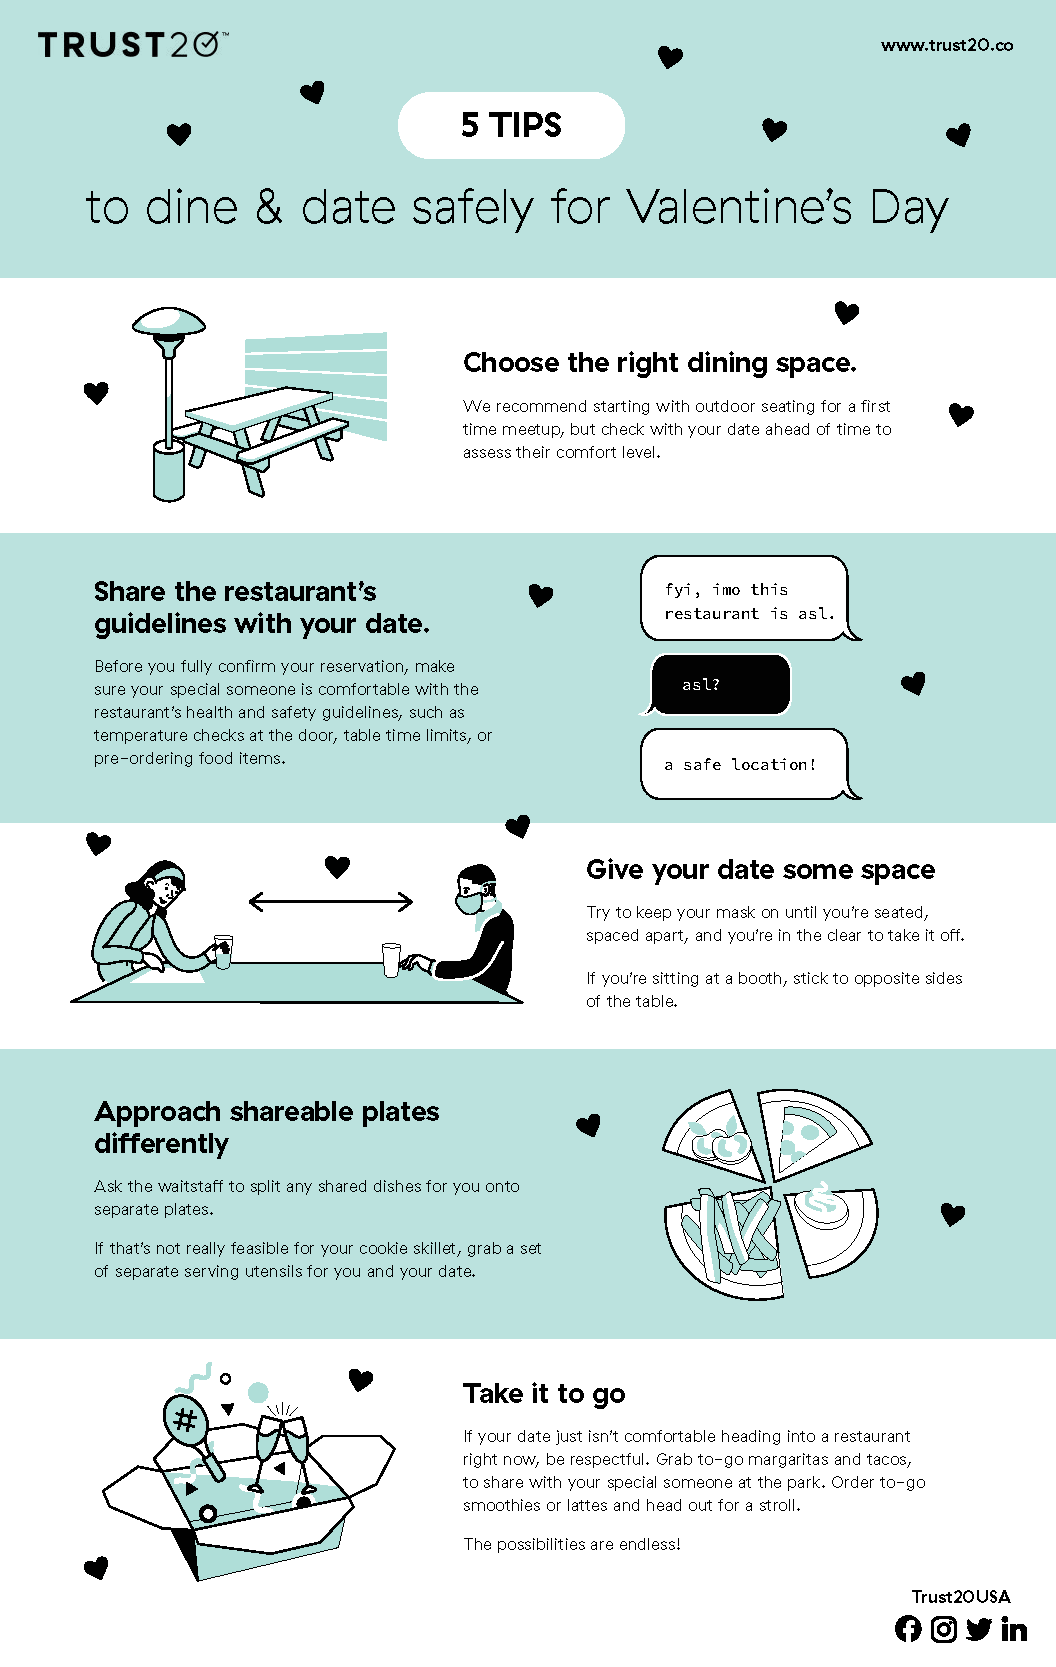 Date & Dine Safely for Valentine's Day